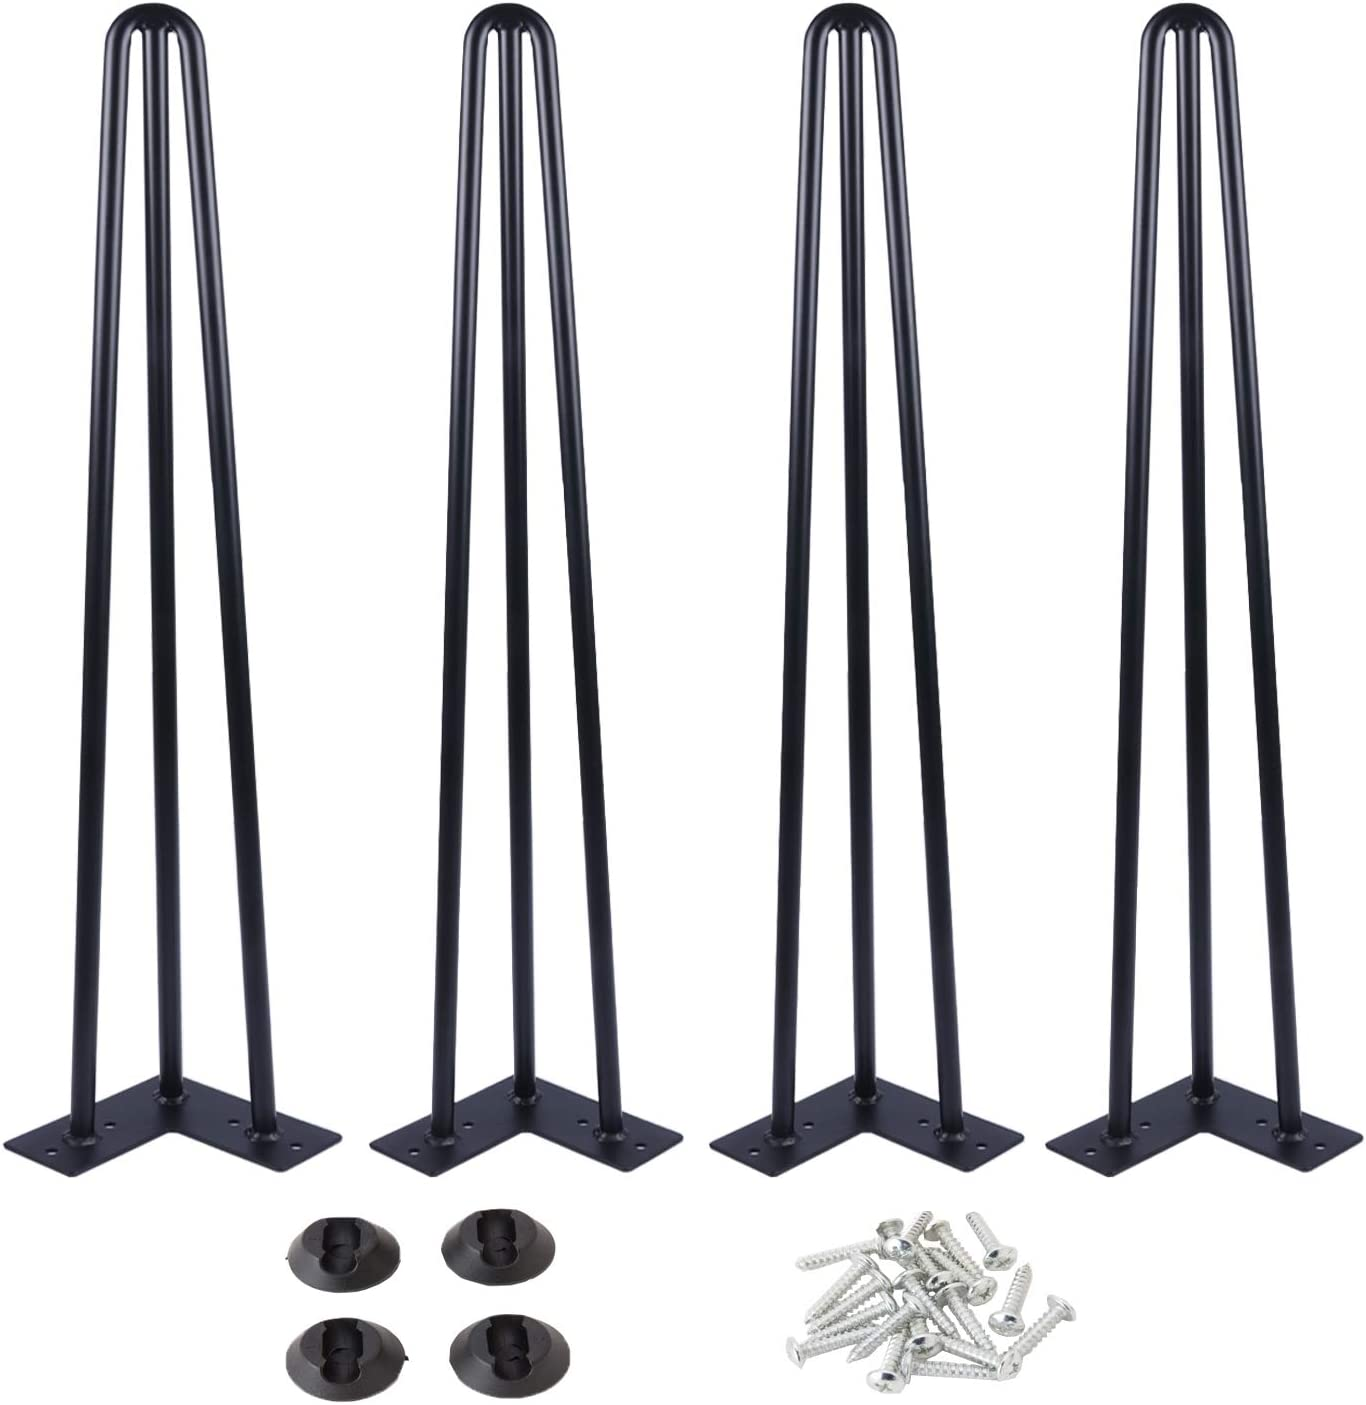 "Osring 30 Inch Hairpin Table Legs with 1/2"" Dia 3-Rods, Heavy Duty Metal Hairpin Furniture Leg for Coffee Table and Patio Bench, Black Hairpin Feet with Floor Protector for Home DIY Project, 4 Pack"